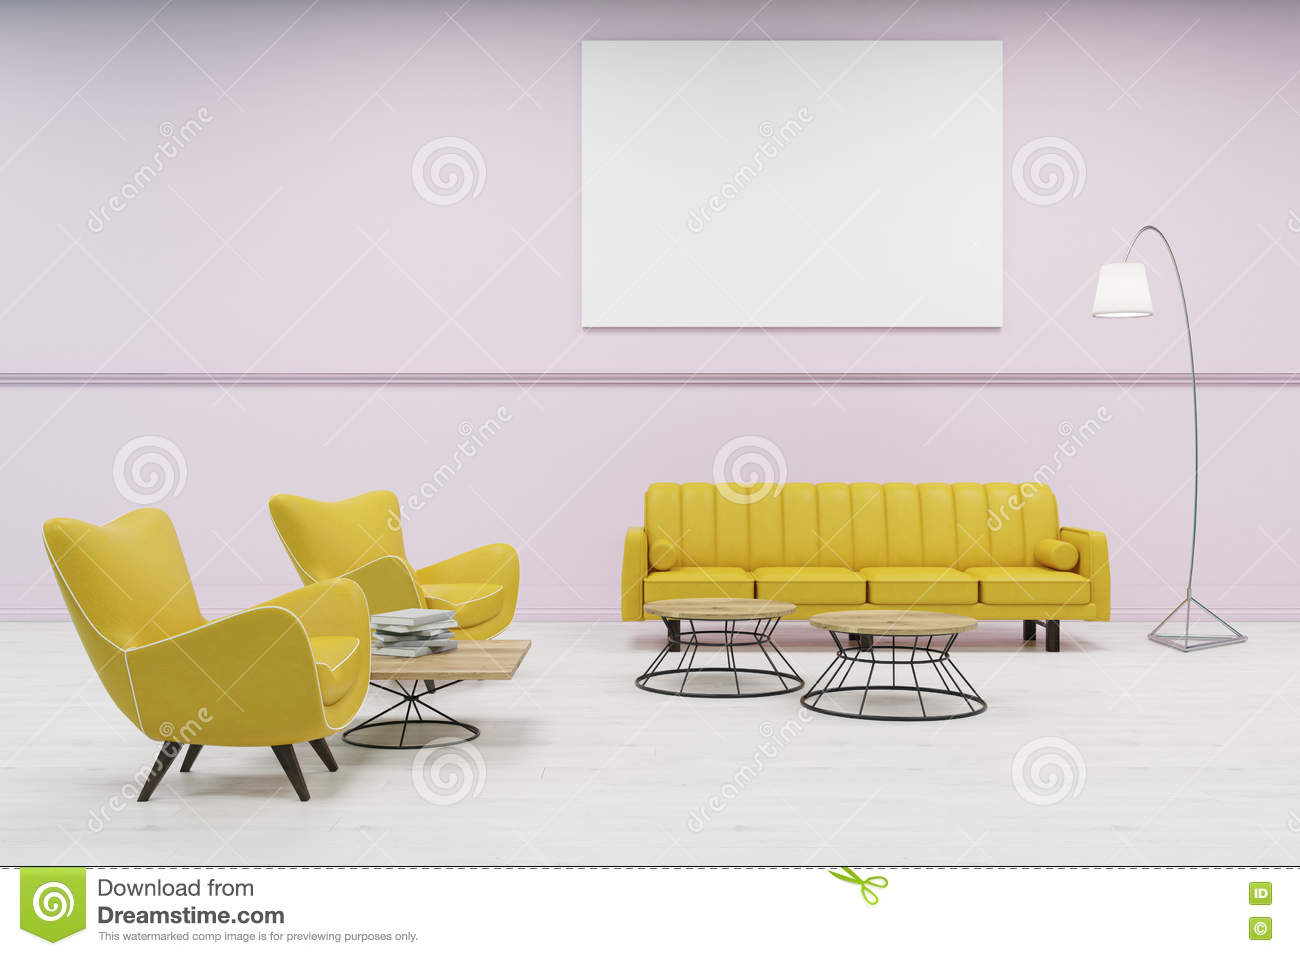 Waiting Room With Pink Walls Stock Illustration - Illustration of ...